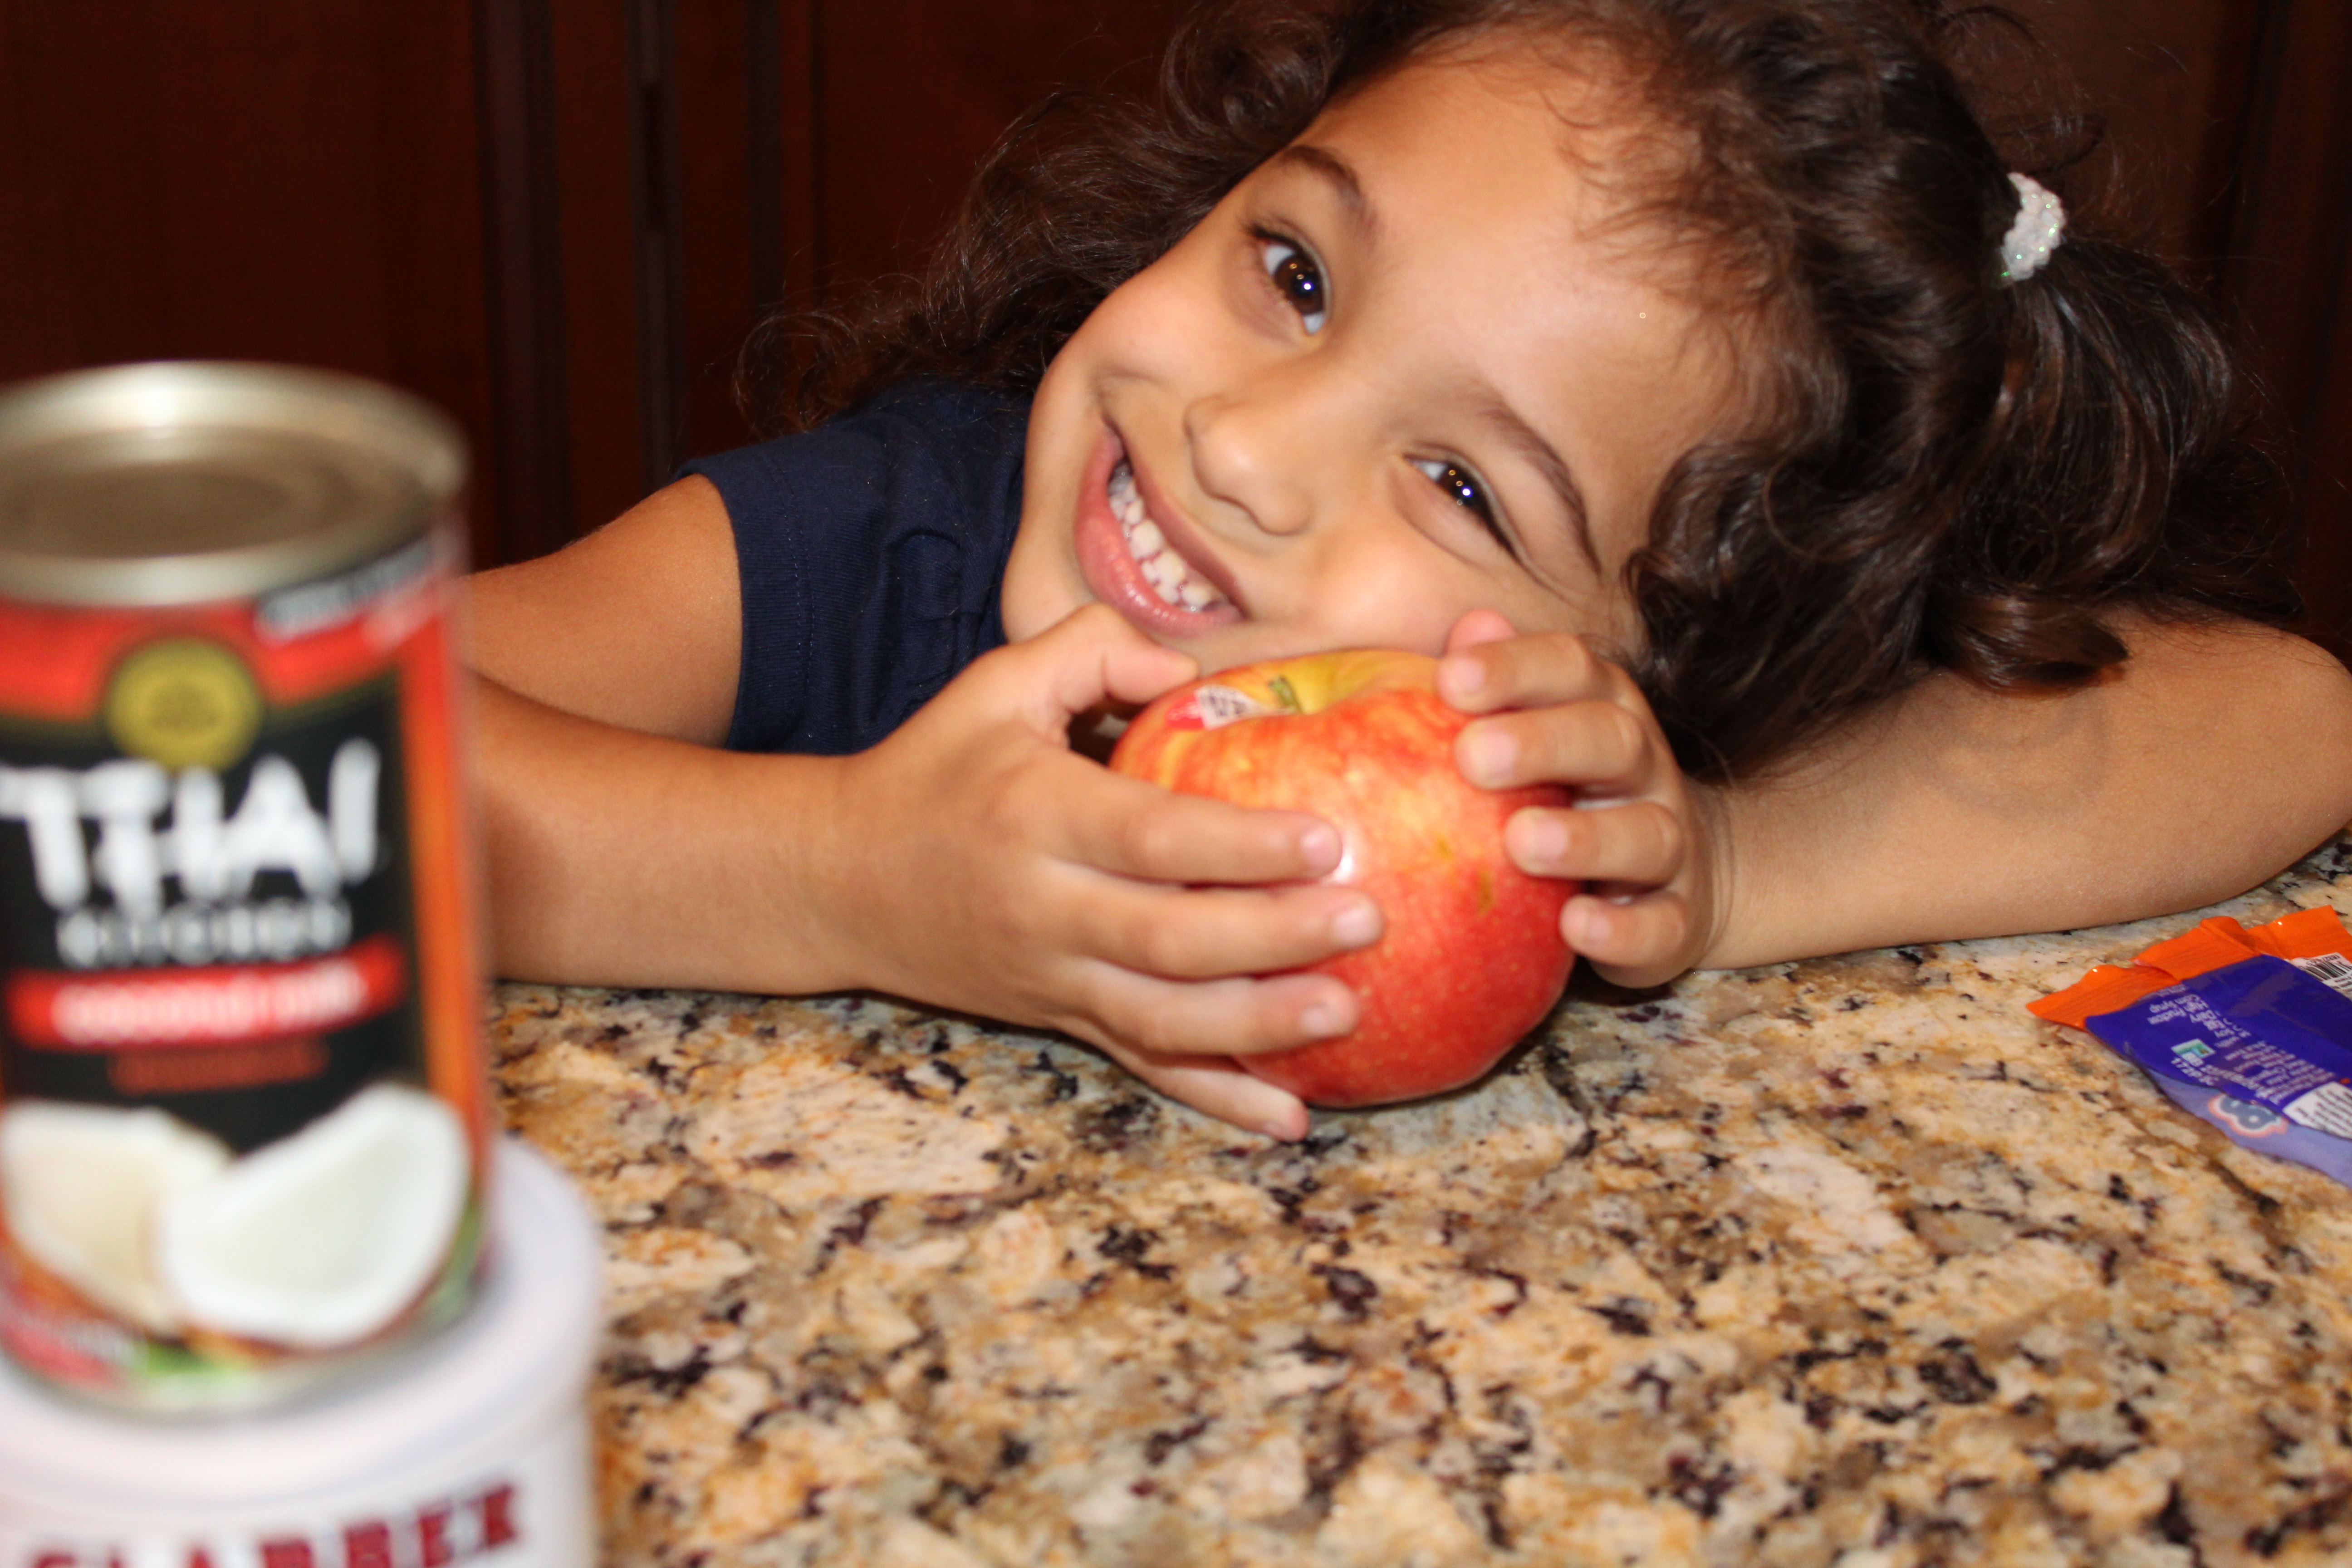 How To Get Your Kids To Eat More Fruit and Veggies